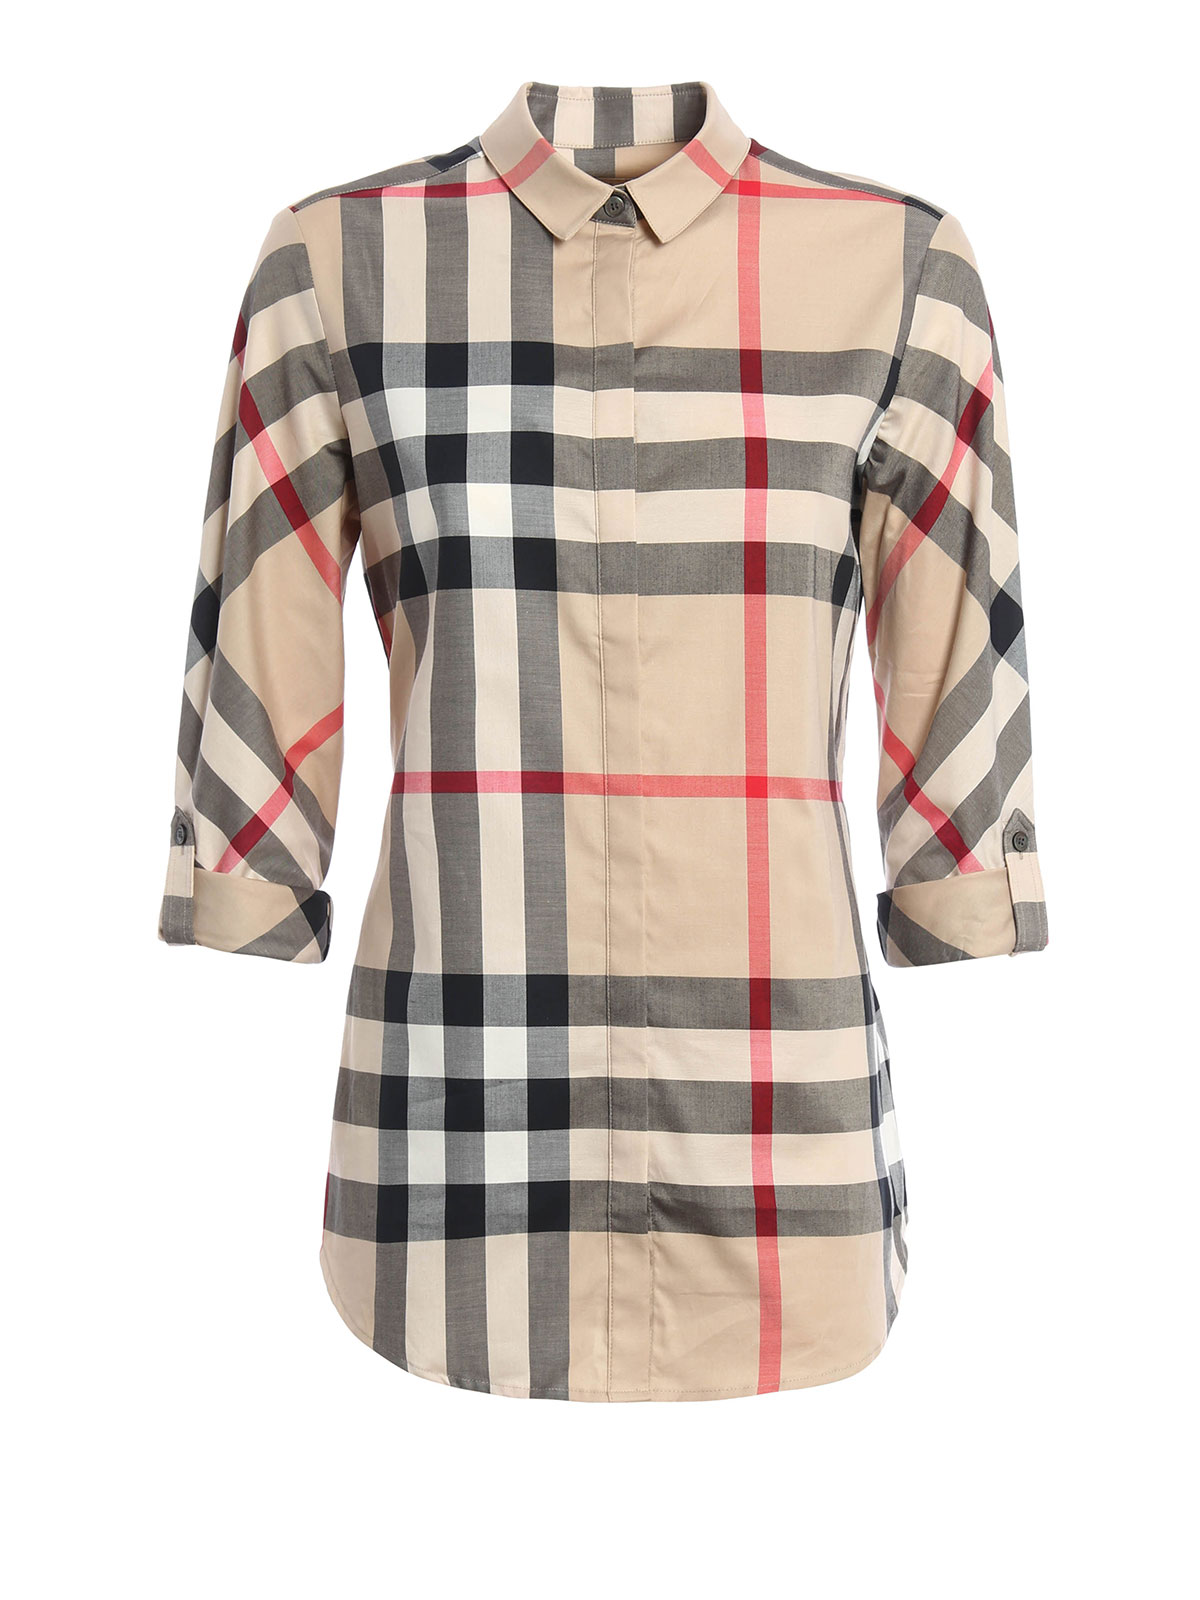 Check shirt by burberry brit shirts ikrix for Burberry brit checked shirt